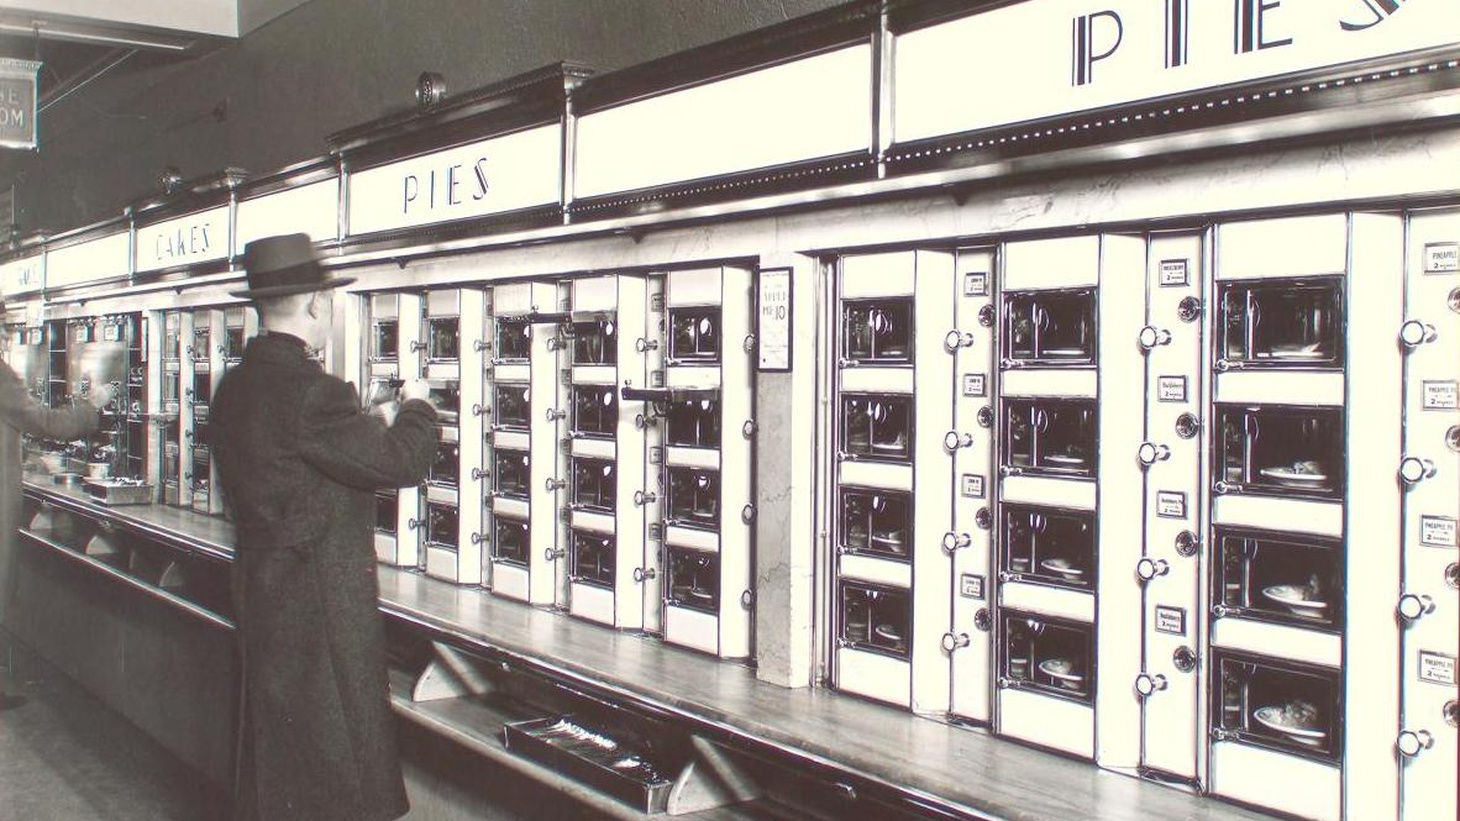 Revisit the bygone days of the automat and home seltzer delivery. Plus, find out what's on the menu for the next mission to Mars.